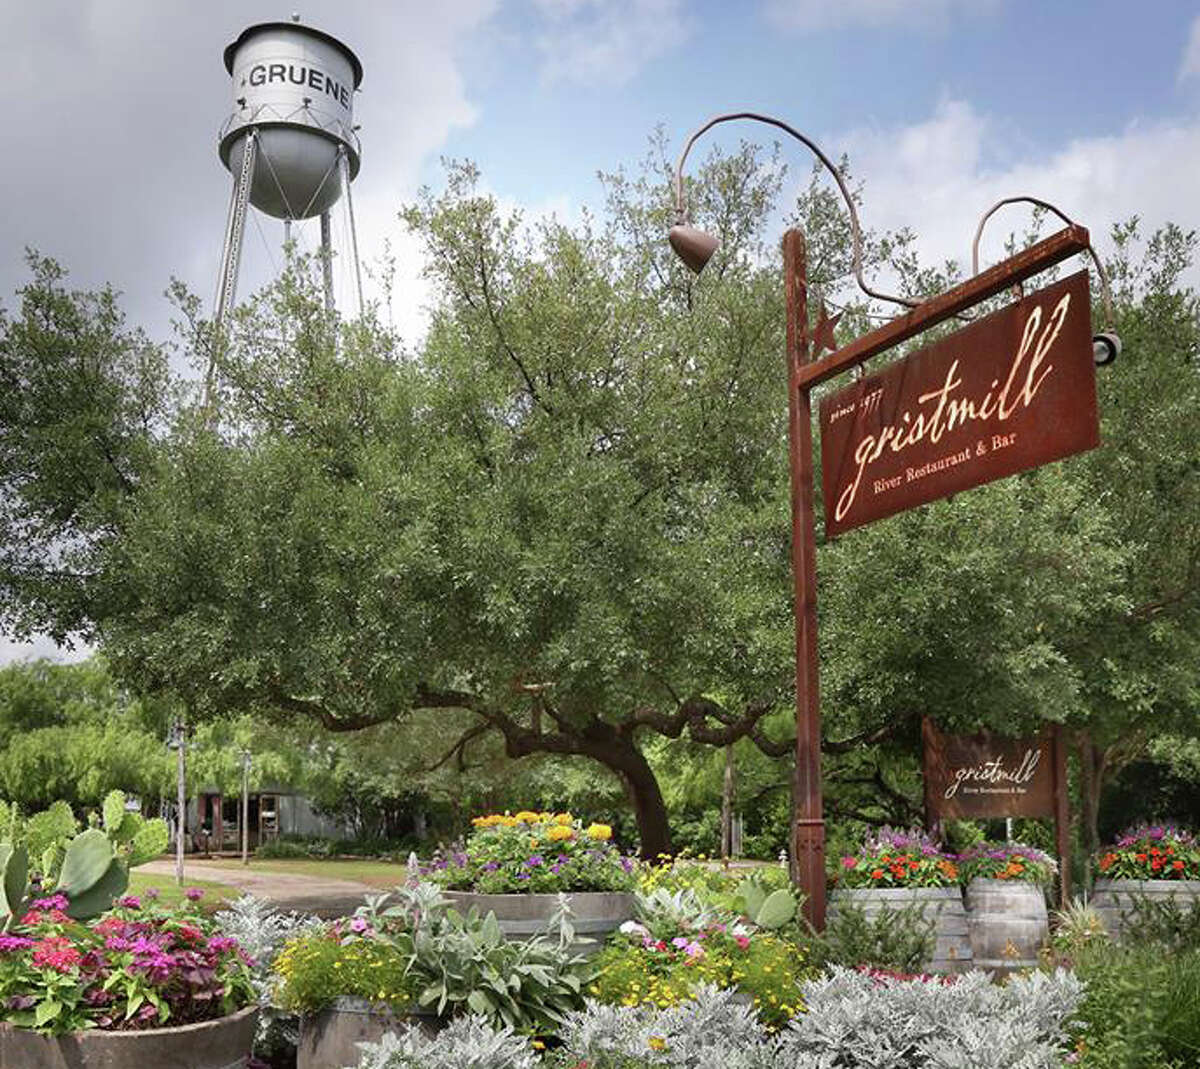 The Gristmill River Restaurant and Bar 1287 Gruene Rd New Braunfels, Texas 78130 (830) 625-0684 Sunday to Thursday from 11 a.m. to 9 p.m. Friday to Saturday from 11 a.m. to 10 a.m.